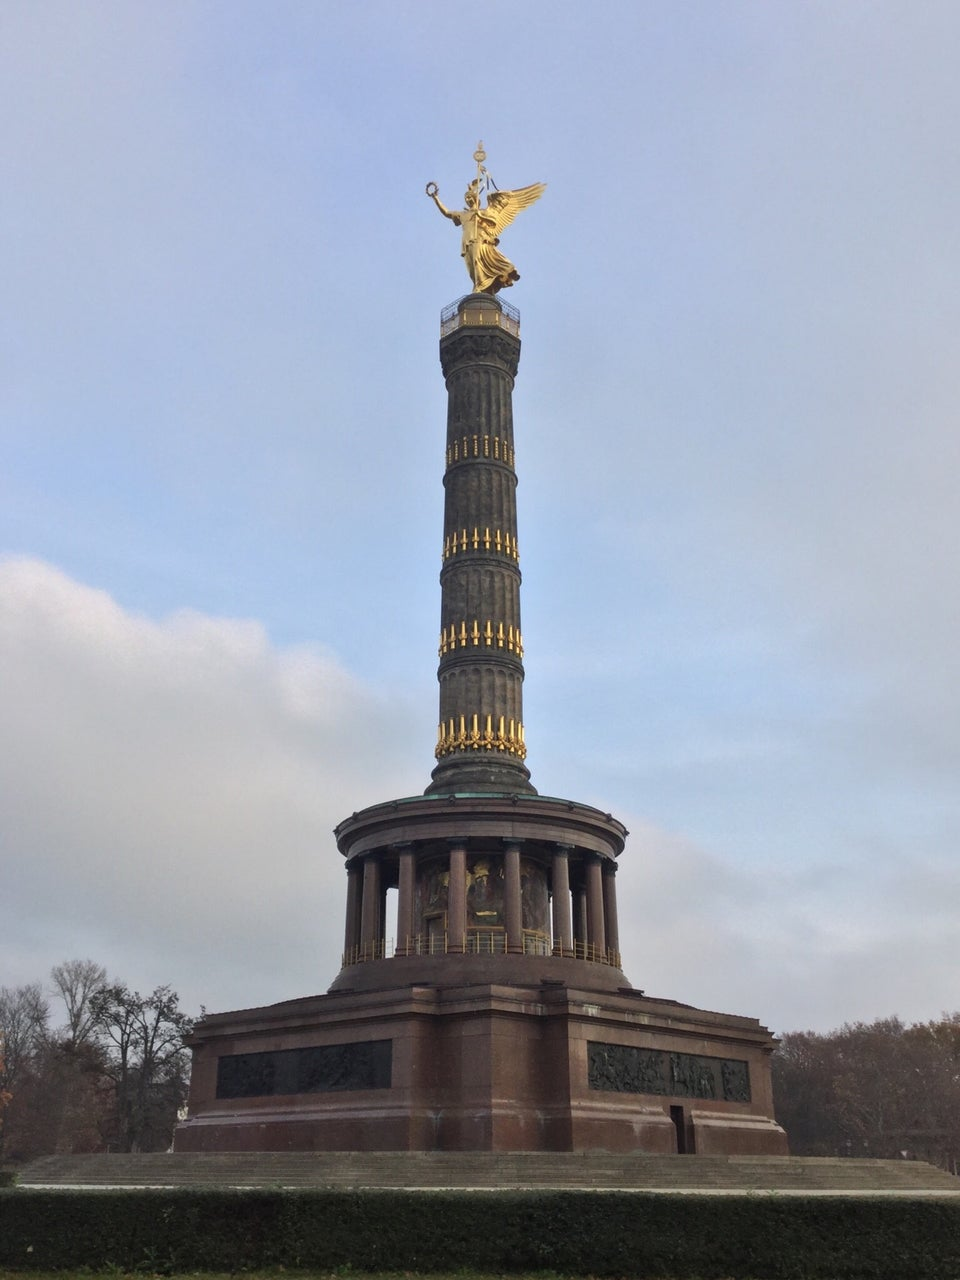 Berlin Victory Column under a partyly cloudy sky, sitting atop its base, with trees in the background on both sides.